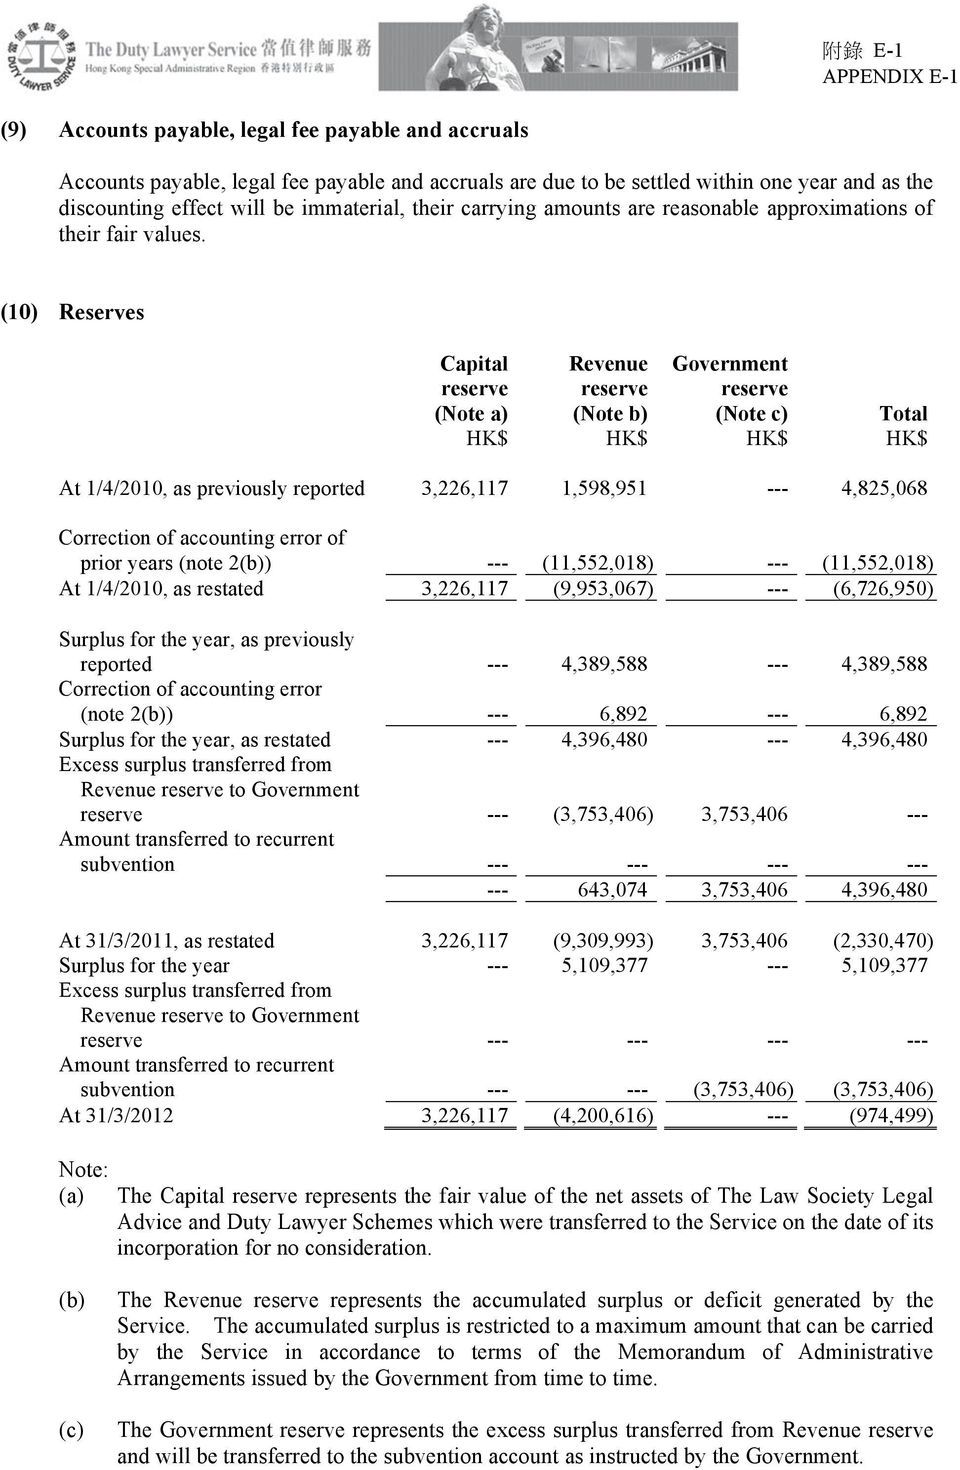 (10) Reserves Capital Revenue Government reserve reserve reserve (Note a) (Note b) (Note c) Total At 1/4/2010, as previously reported 3,226,117 1,598,951 --- 4,825,068 Correction of accounting error